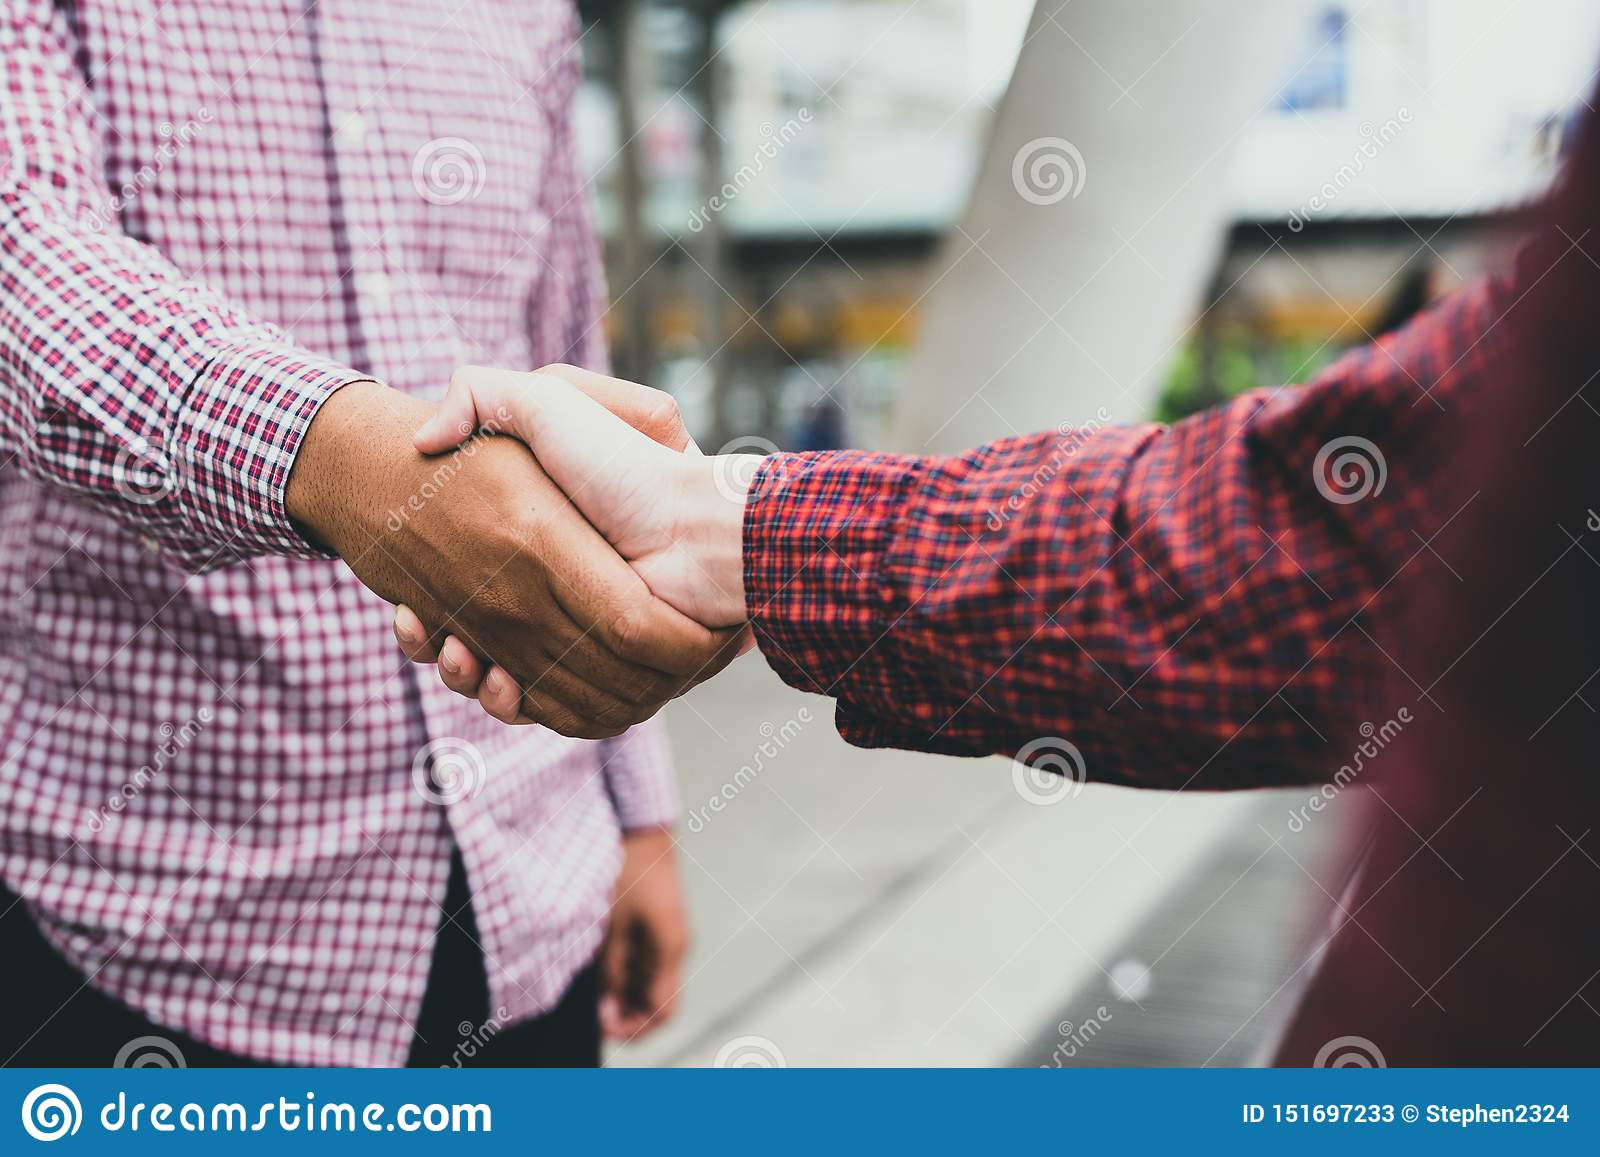 Business team greeting handshake. Image of good deal, success, dealing, greeting & business partner concept.